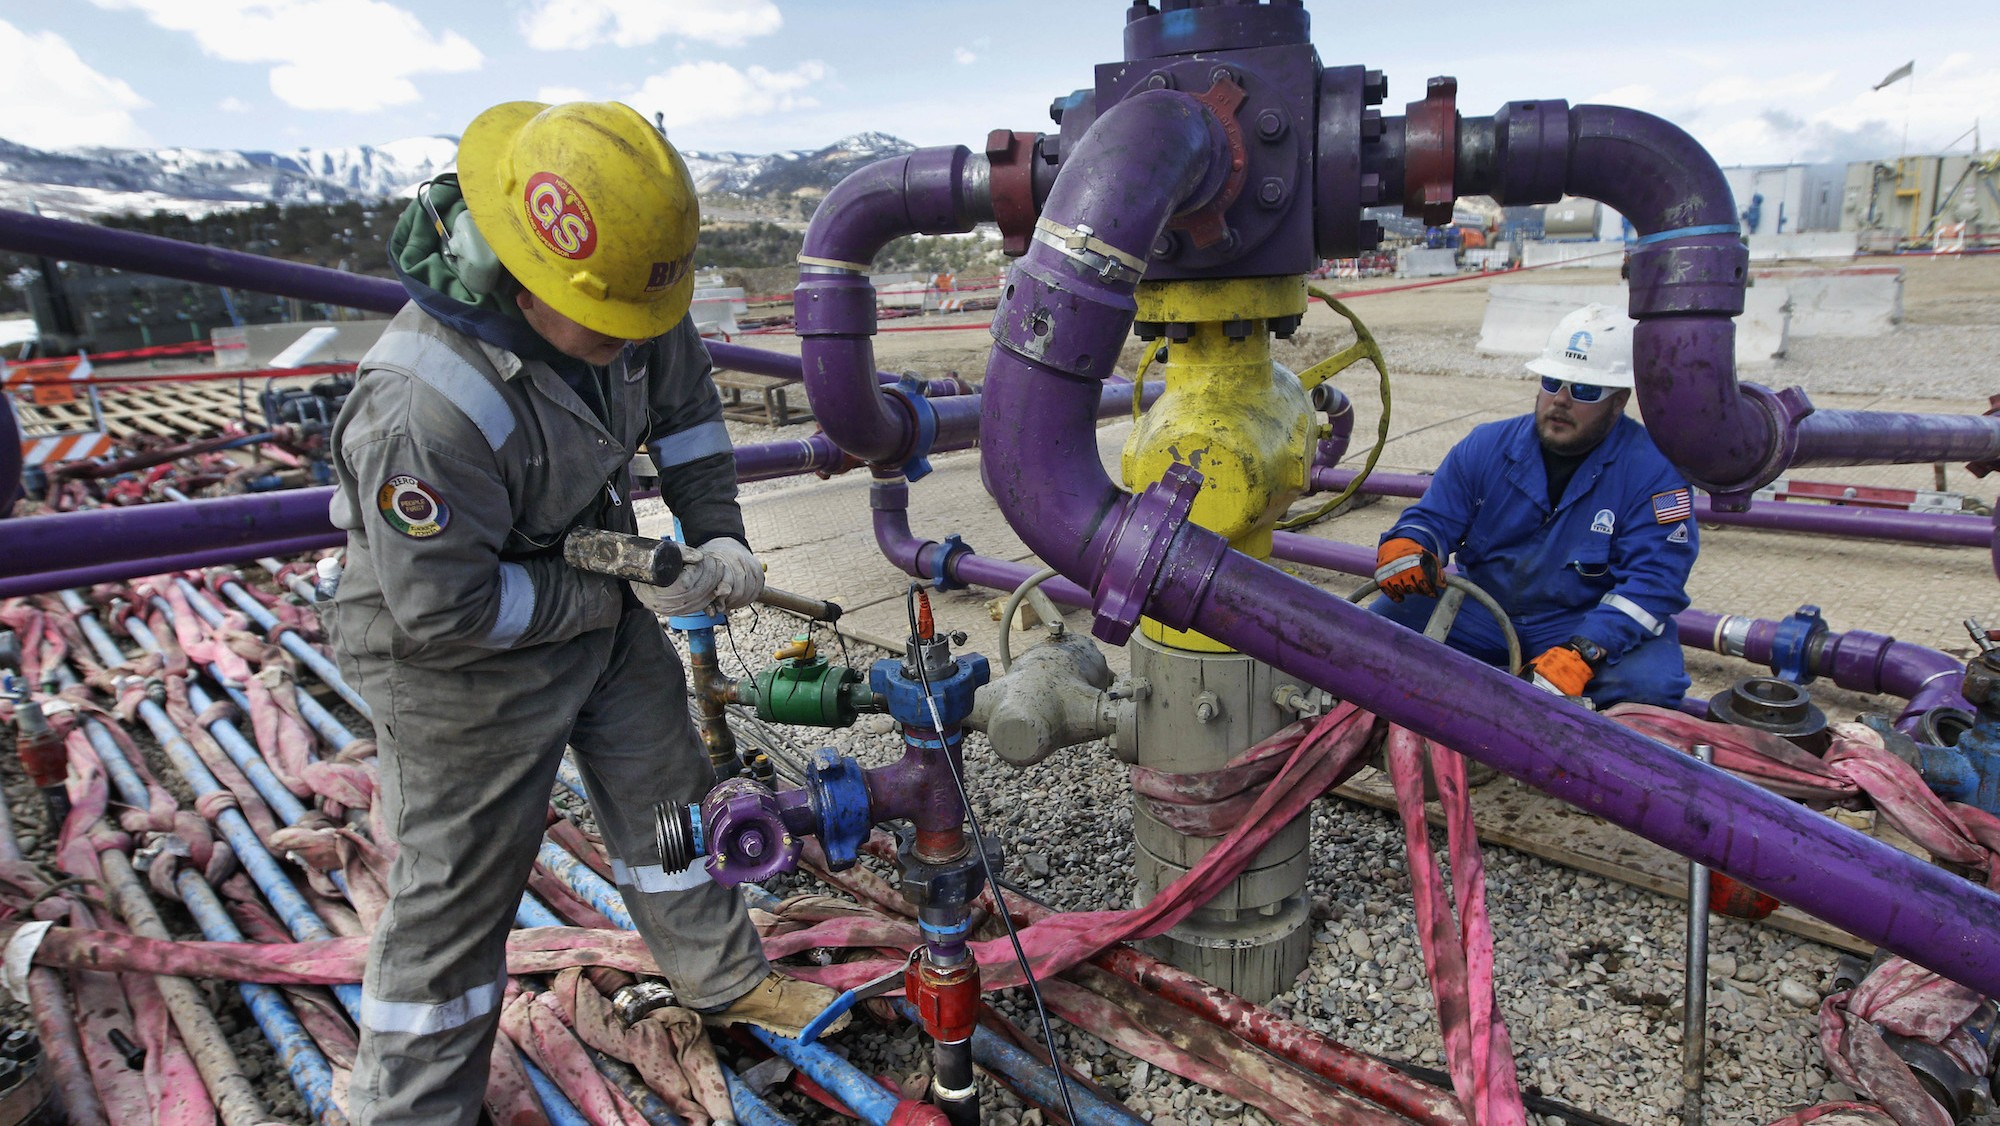 Lower oil prices aren't helping some American workers